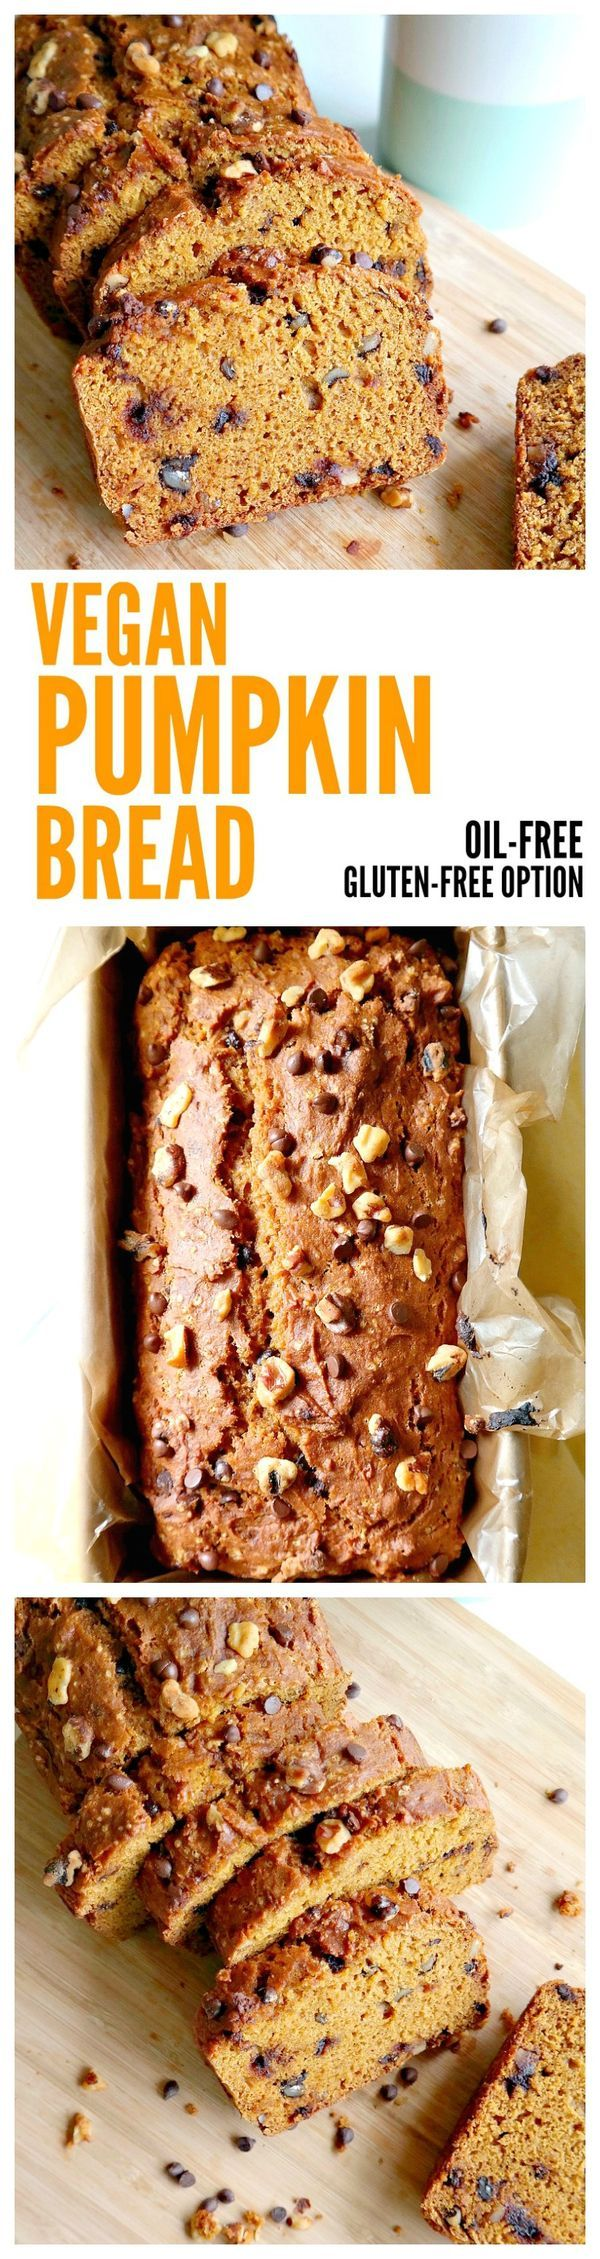 Vegan Pumpkin Bread. Easy, Oil-Free Recipe with Gluten Free Option. Doesn't crumble or fall apart!! Super soft and moist. Made with pumpkin purée, pumpkin spices and naturally sweetened. #vegan #pumpkin #bread